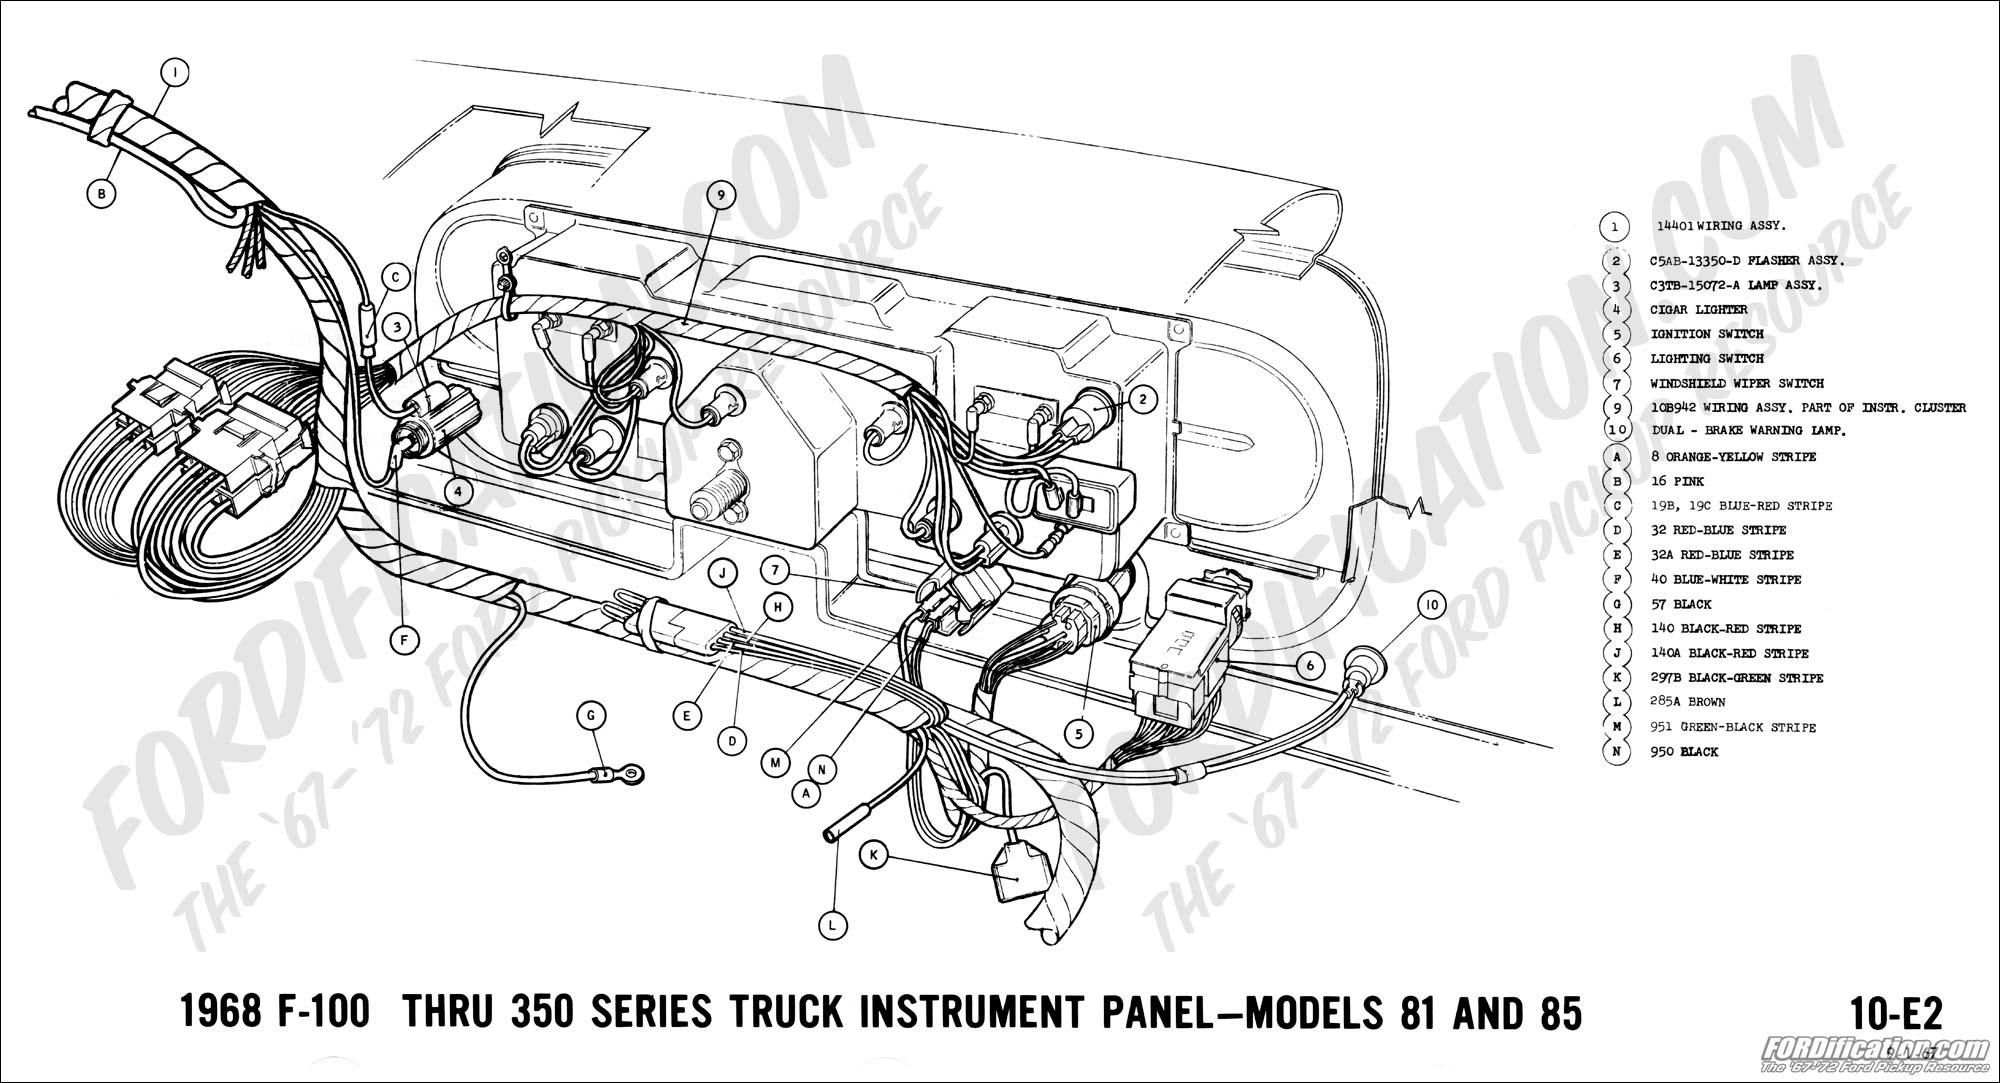 69 Camaro Windshield Wiper Wiring Schematic Library 1968 Diagram 85 Turn Signal F 100 Thru 350 Instrument Panel